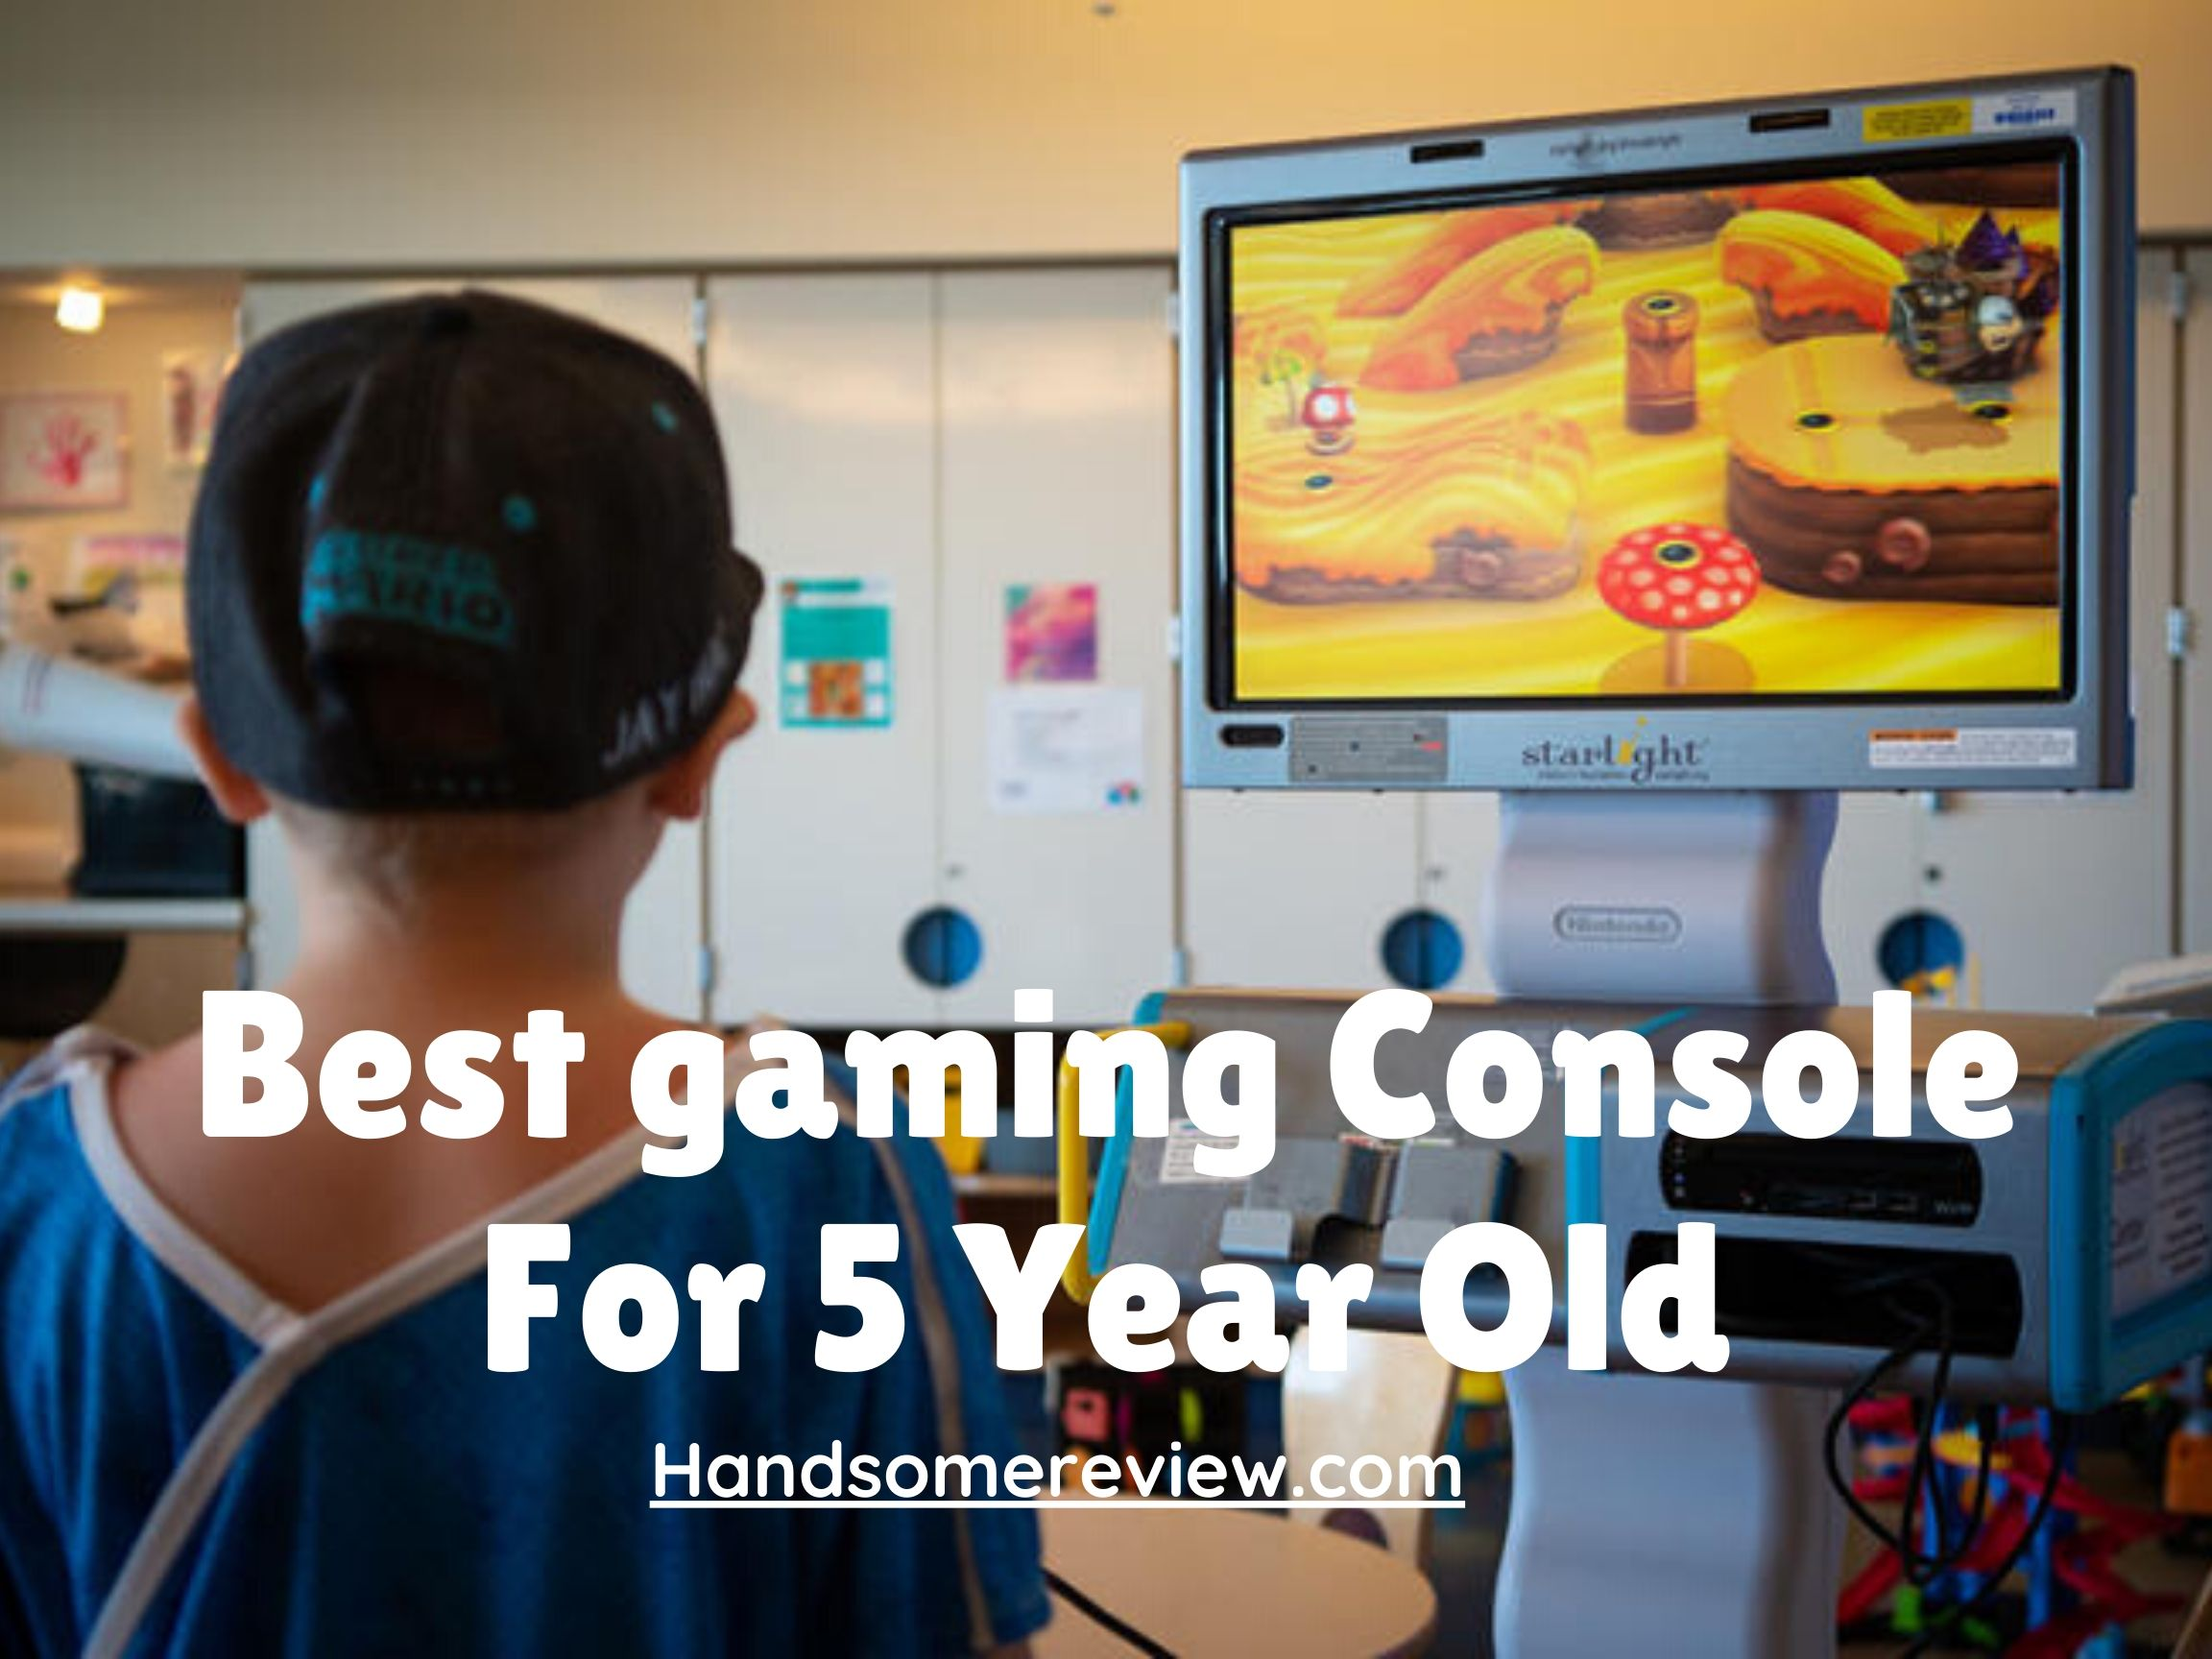 gaming console for 5 year old